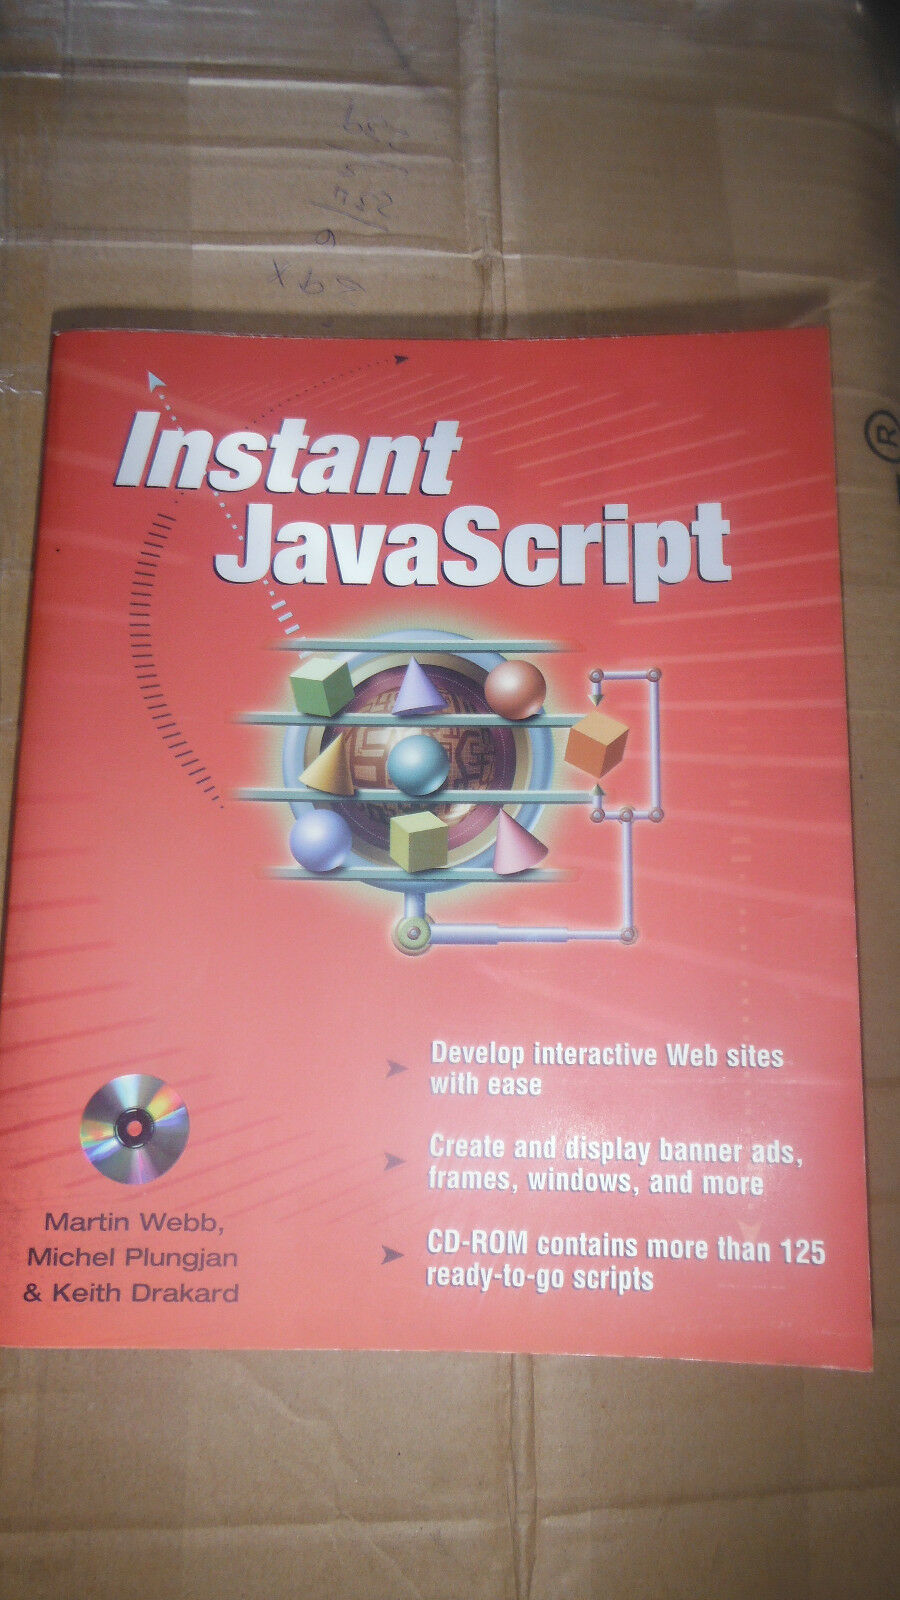 INSTANT JAVASCRIPT  BY MARTIN WEBB, MICHEL PLUNGJAN, KEITH DRAKARD "